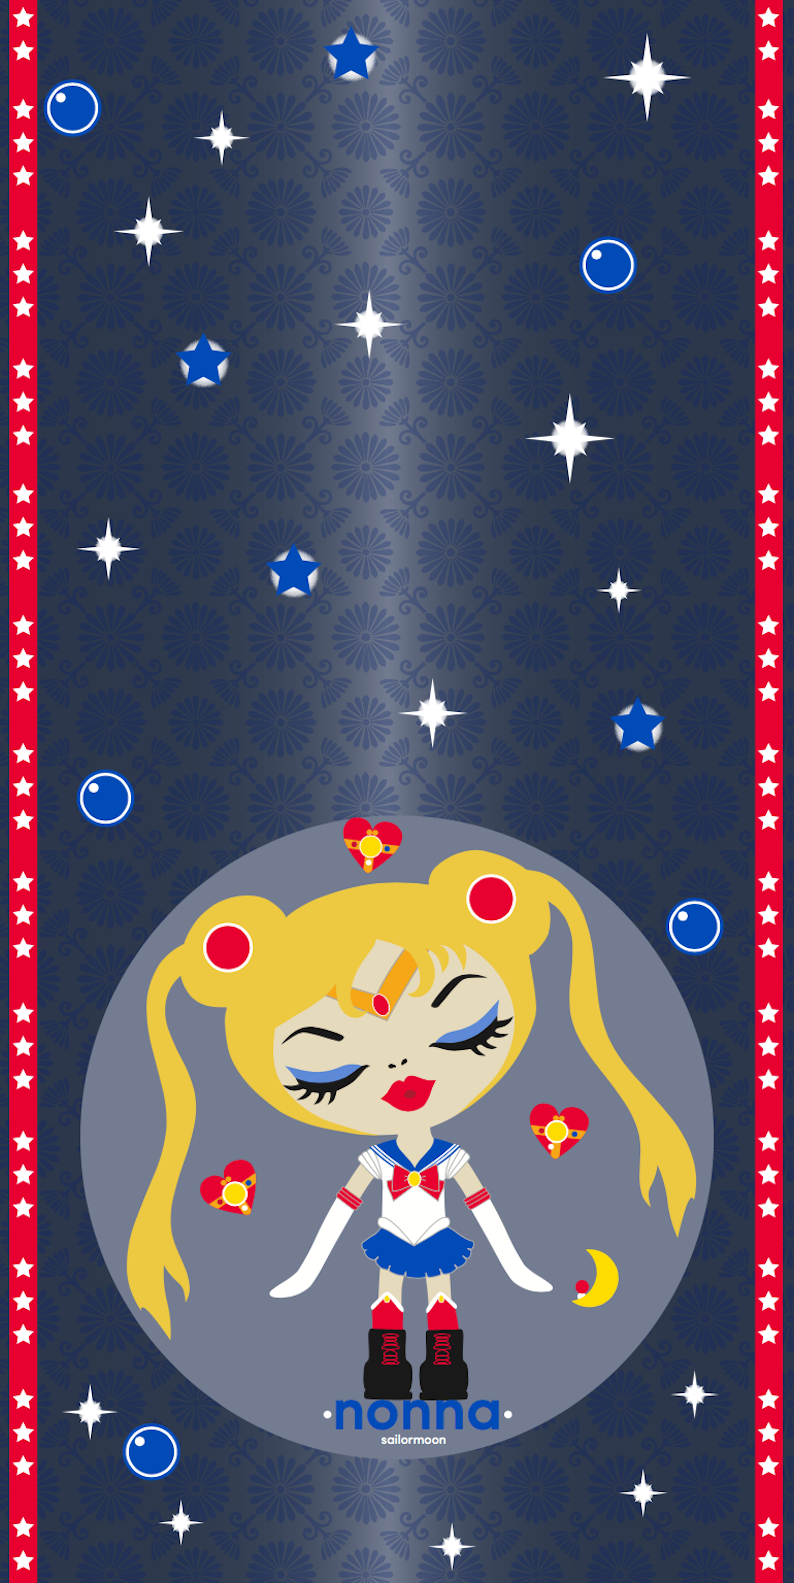 Sailormoon silk scarf